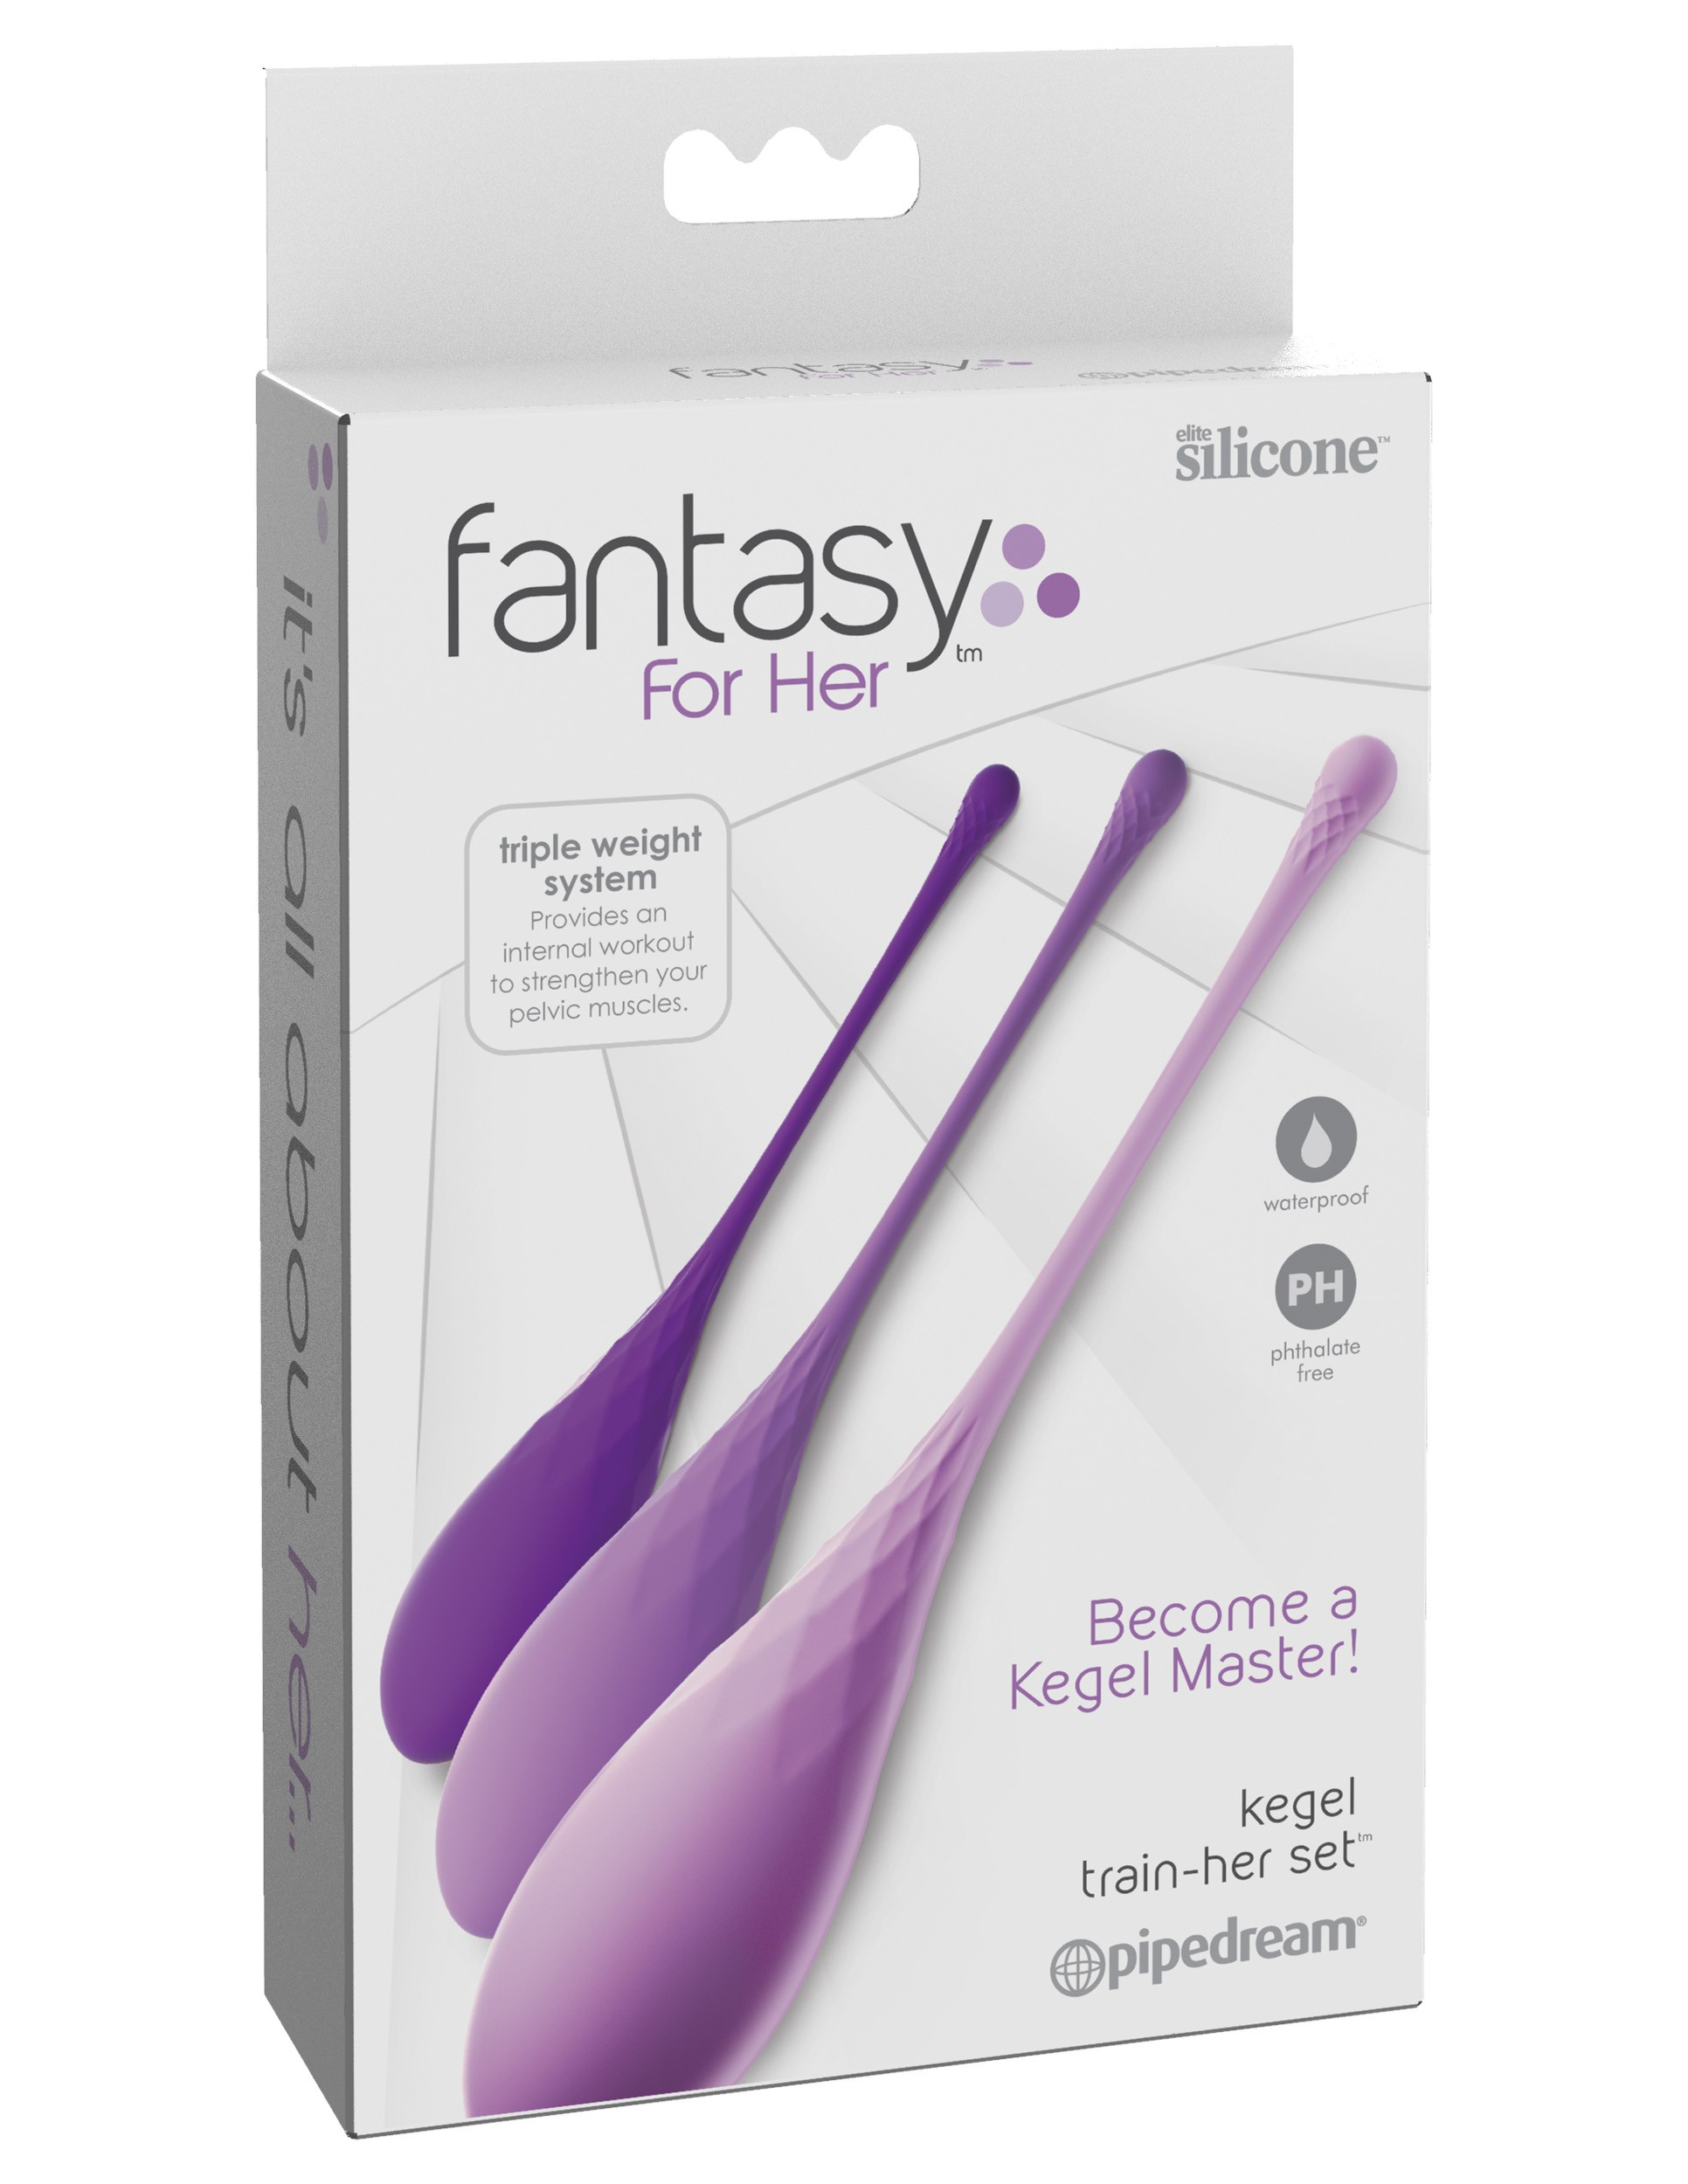 FANTASY FOR HER KEGEL TRAIN-HER SET